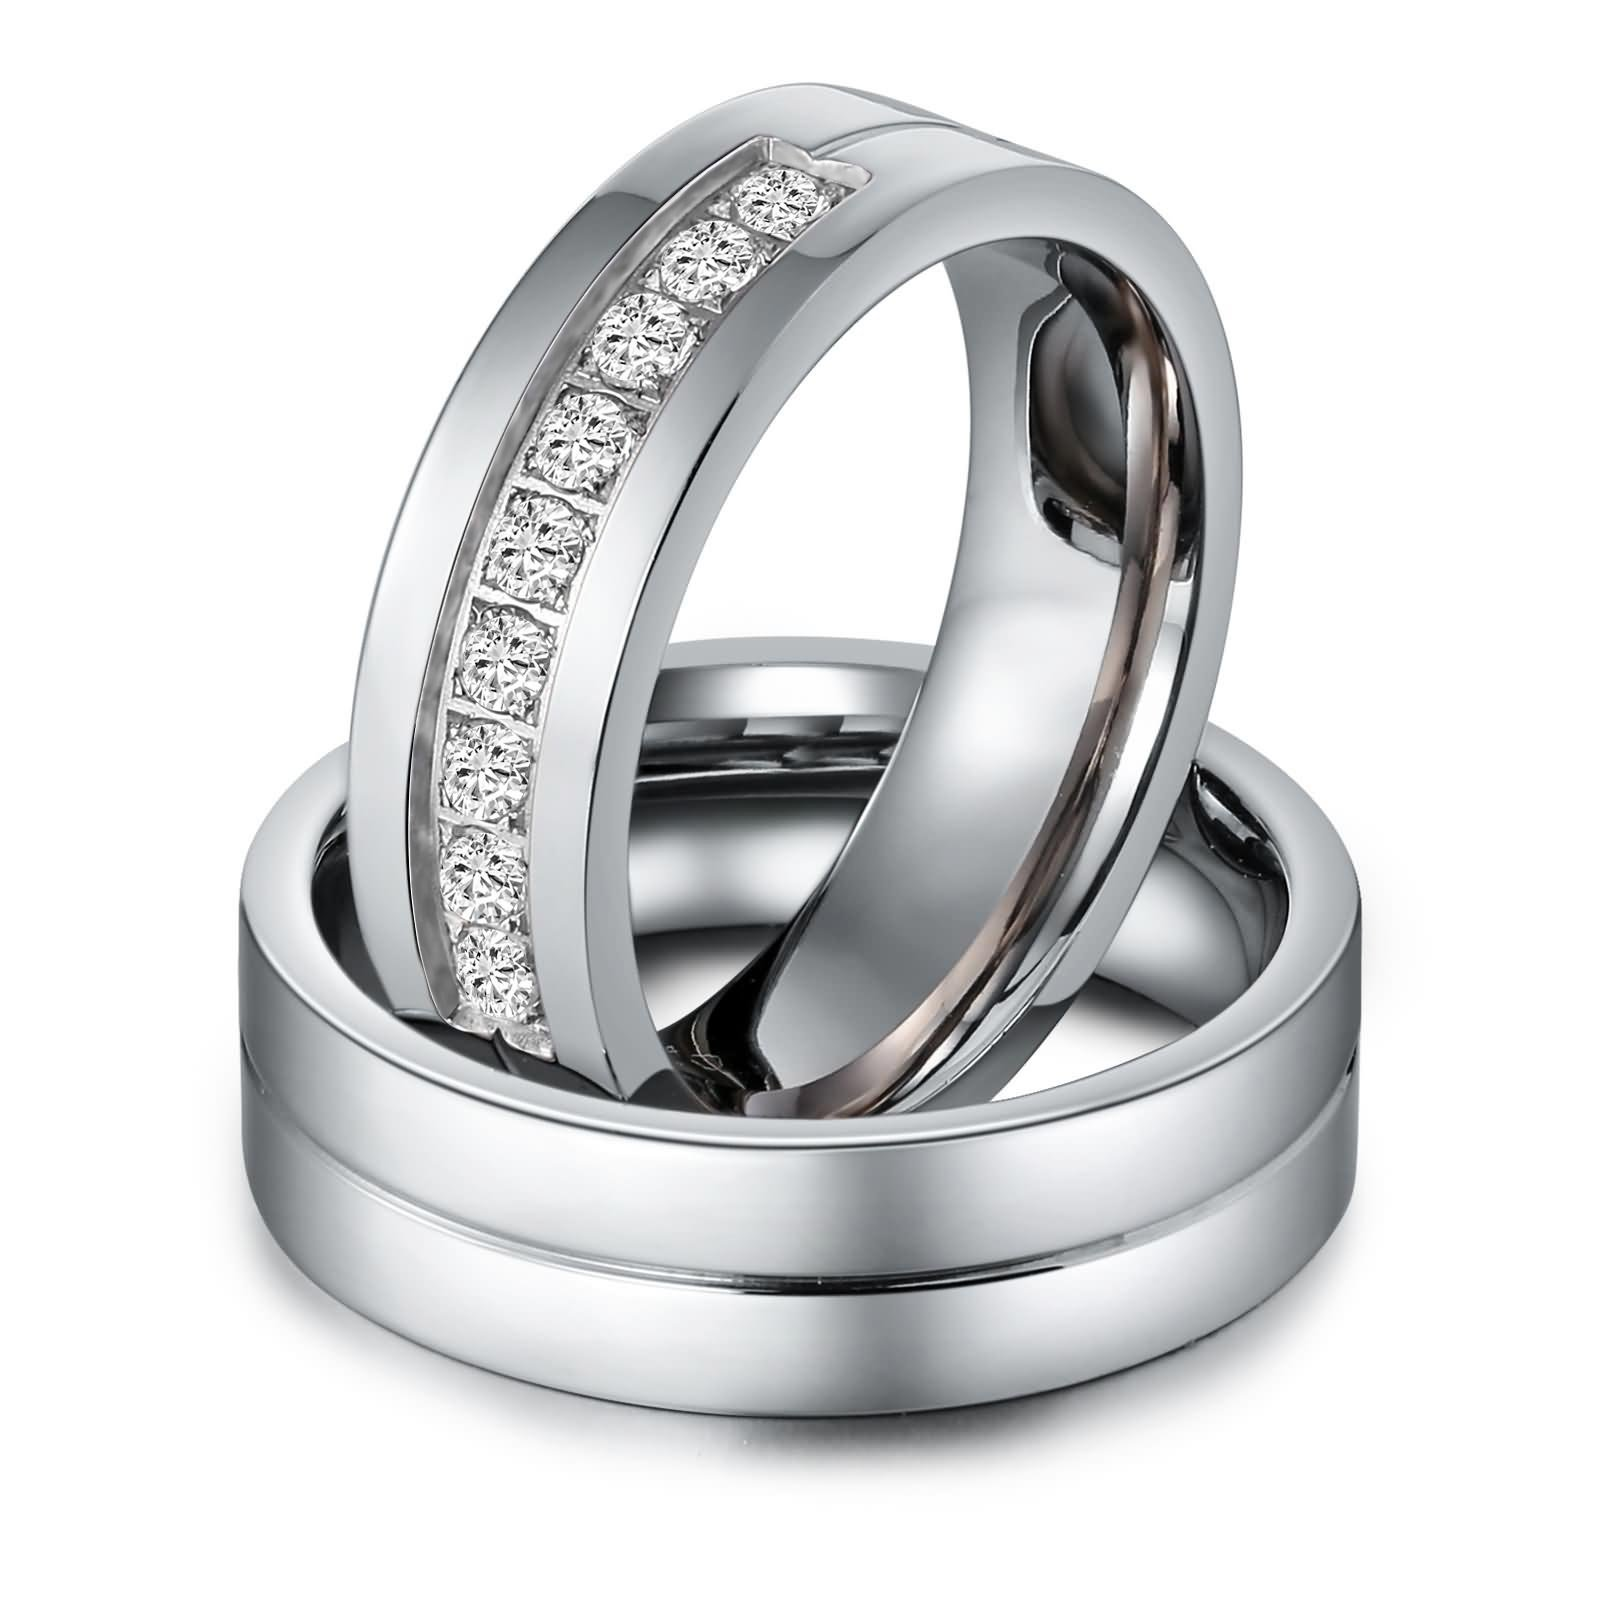 Aeici Stianless Steel Silver ''Forever Love'' Couples Promise Ring Romantic Couples Gift Women Size 9 & 10 by Aeici (Image #5)